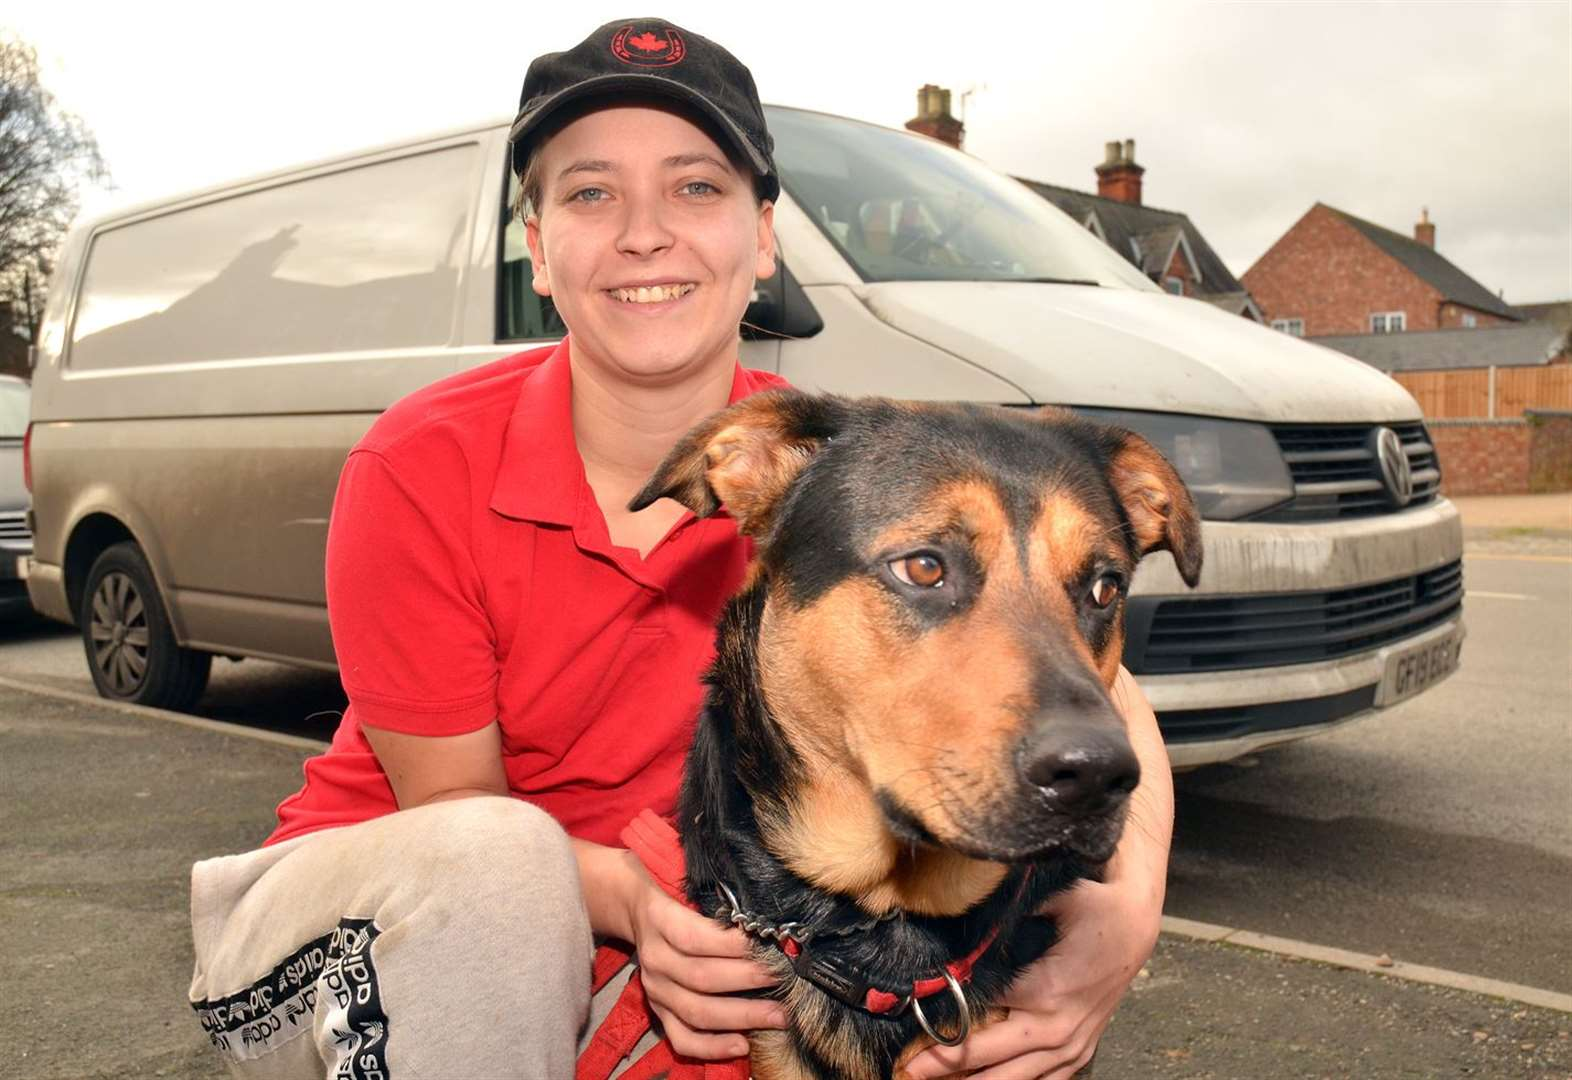 Heroic dog saves owner from van theft